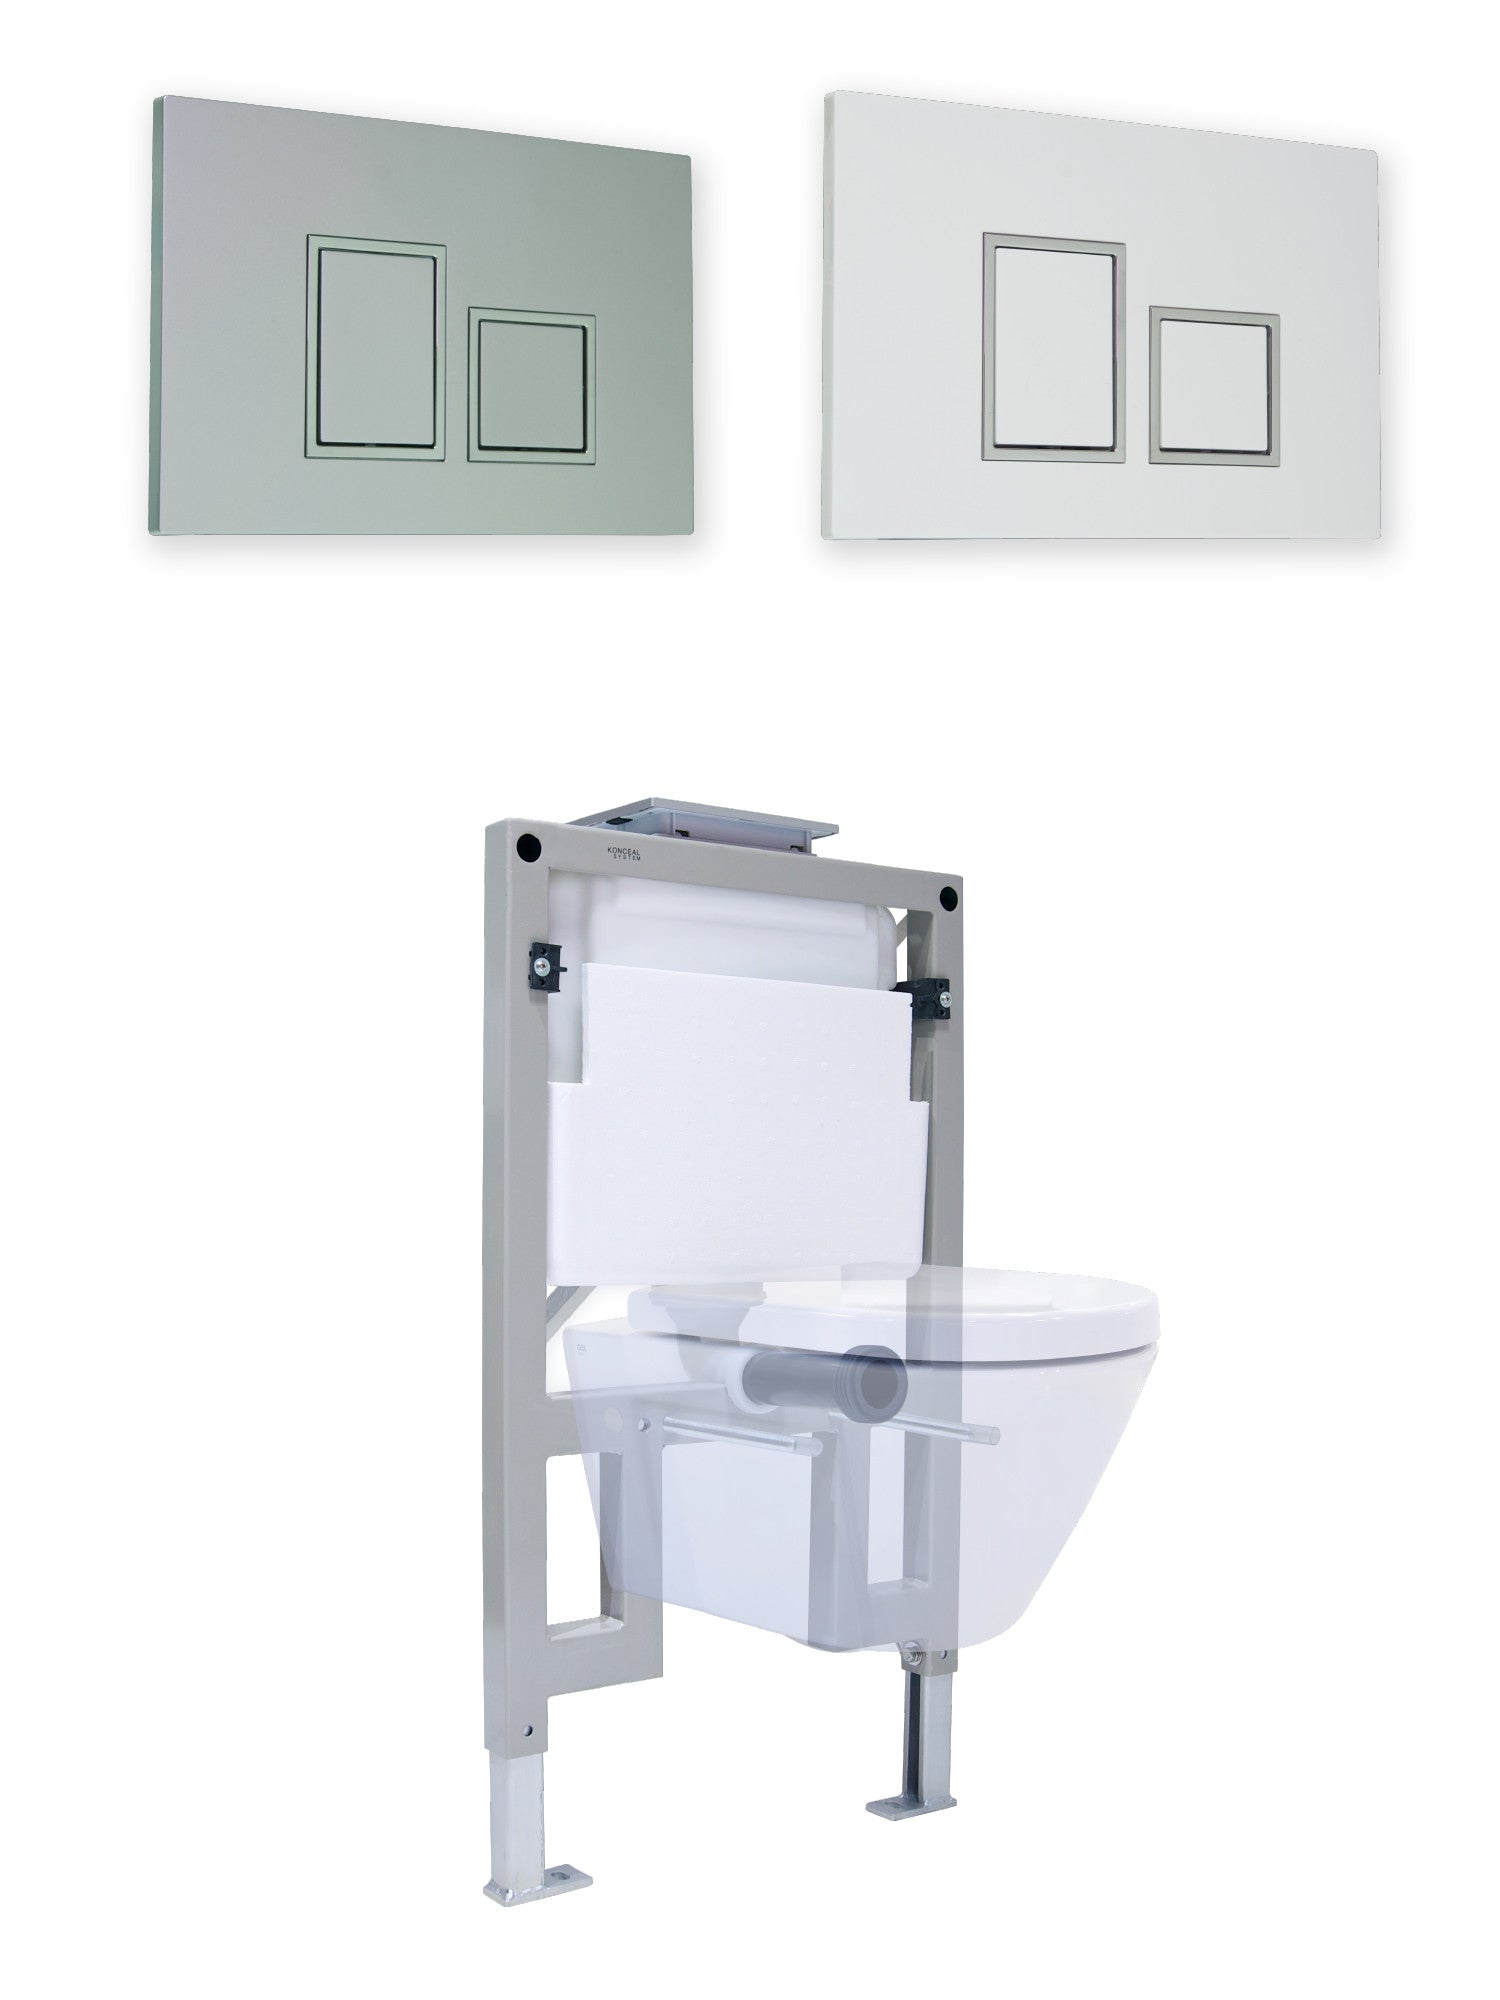 Traccia Big Floor Standing WC w/ Std S&C #GP691411